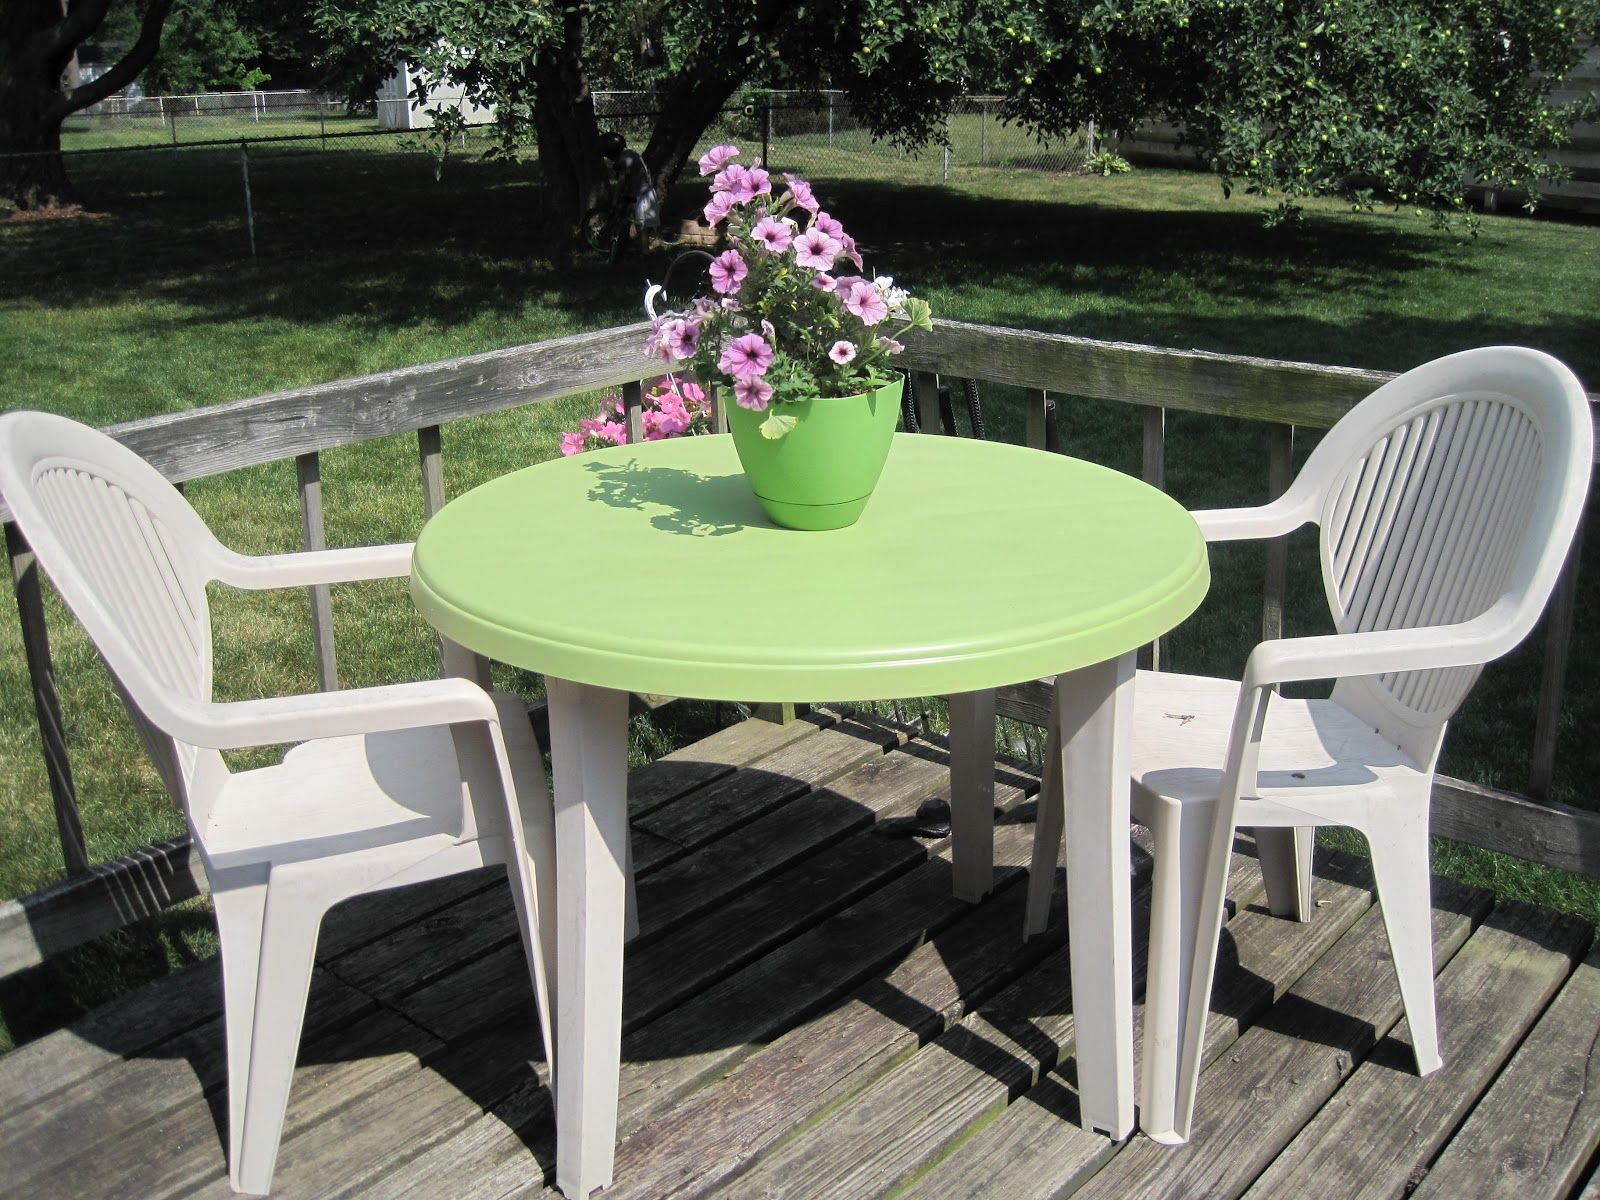 fers A Broad Array New Patio Furniture In 2013 Family Leisure